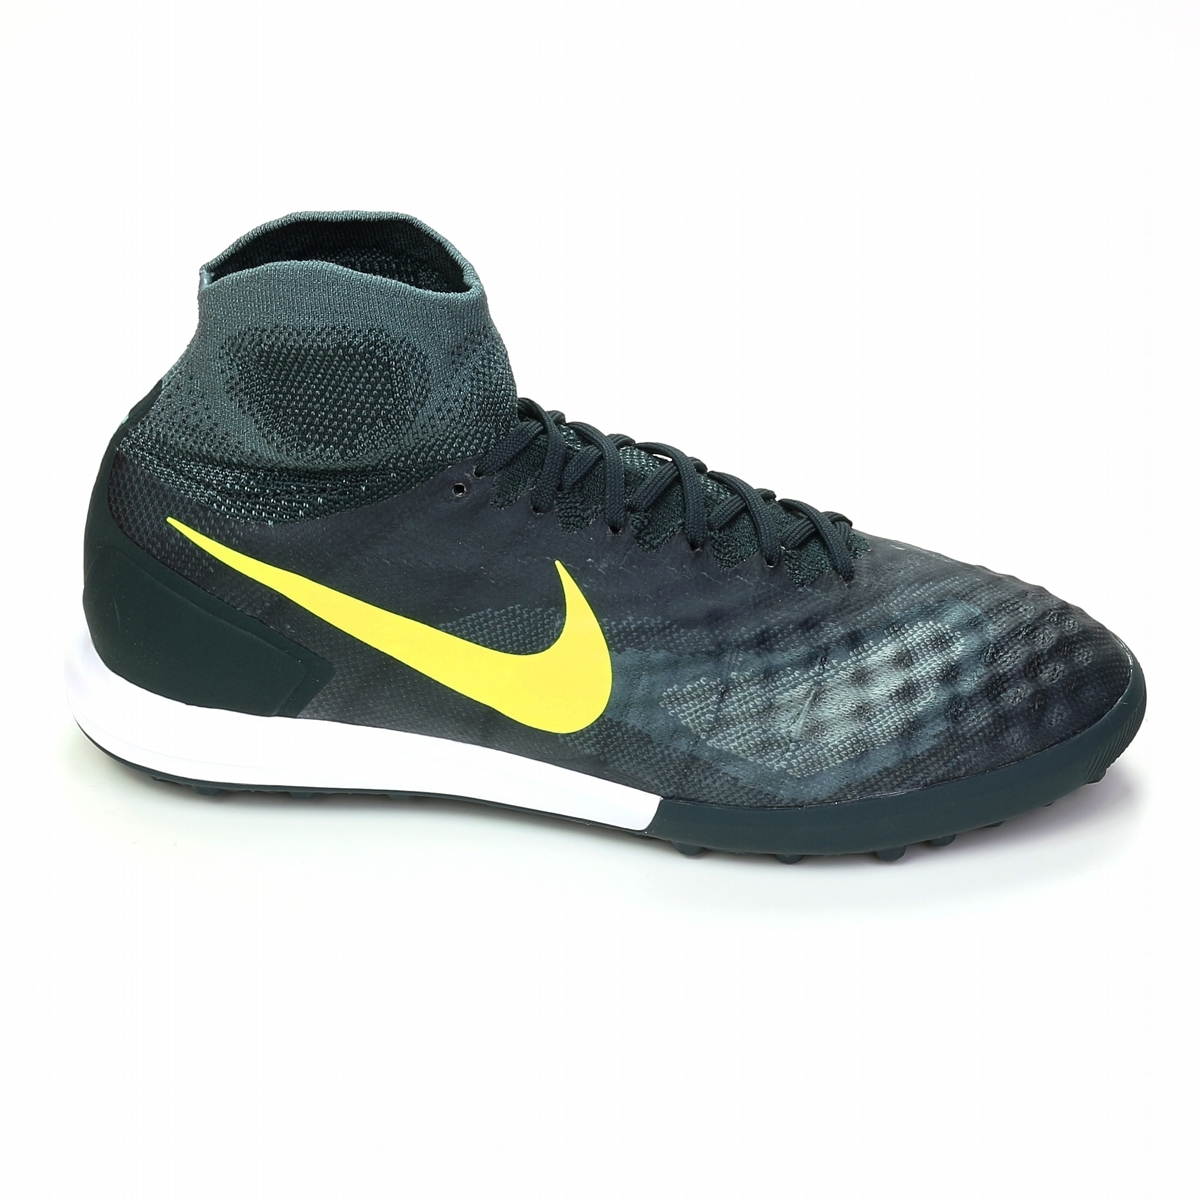 ... Nike MagistaX Proximo TF Turf Soccer Shoes (Seaweed/Volt/Hasta/Mica  Green ...